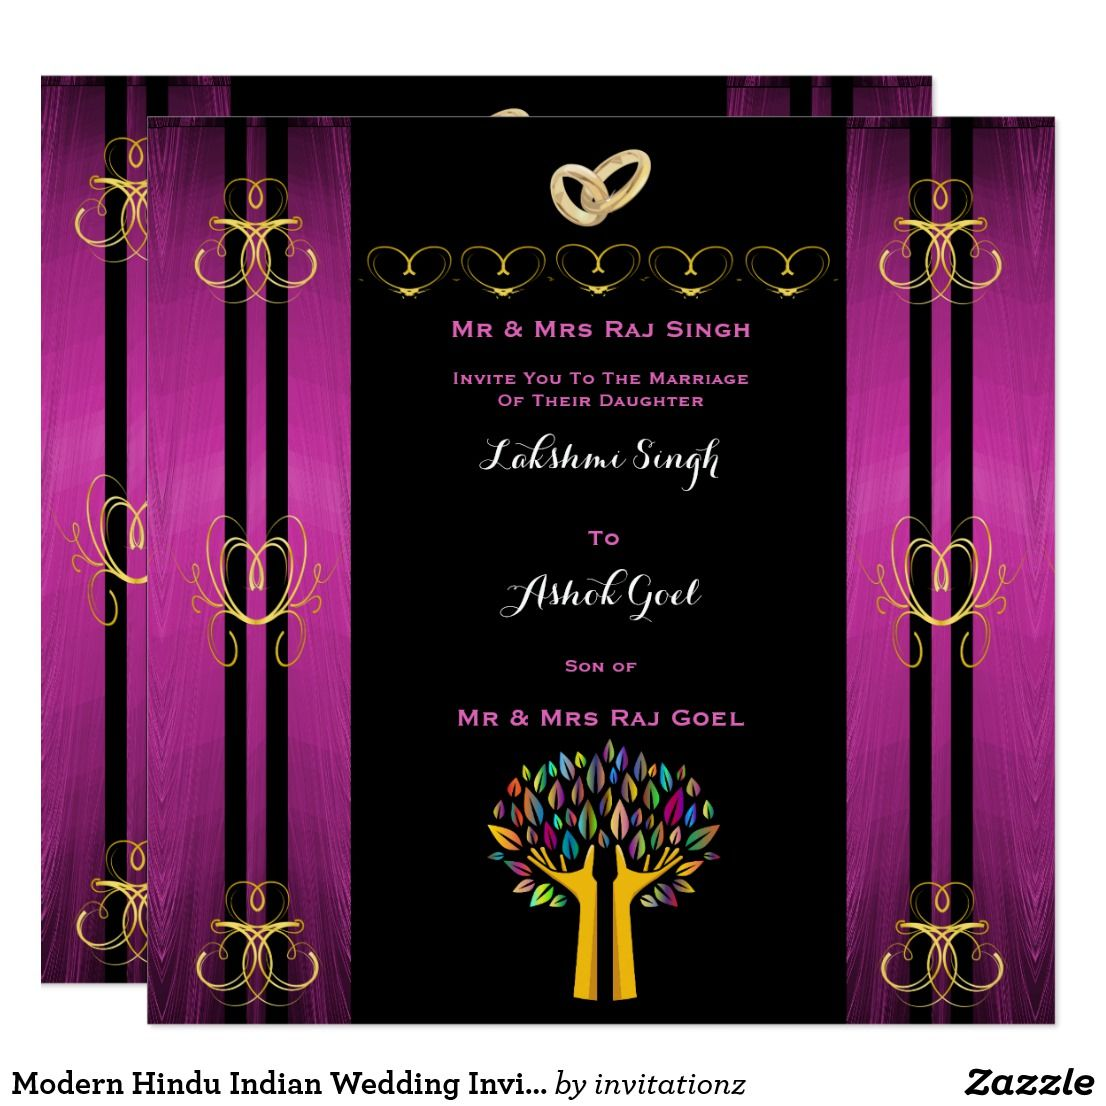 Modern Hindu Indian Wedding Invitation Gold Purple | Hindu Gifts ...